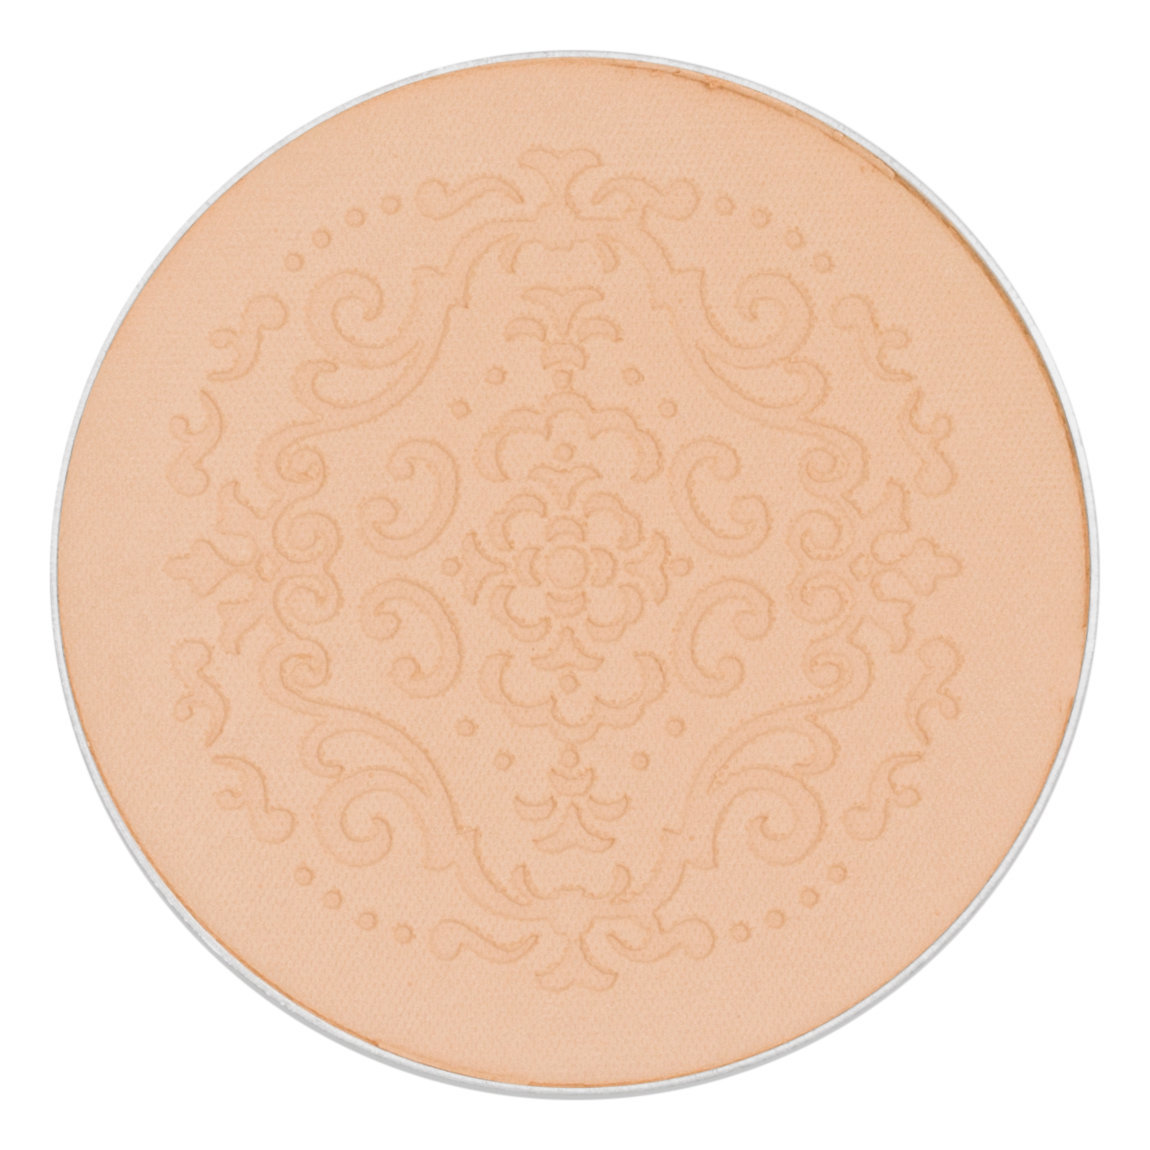 Anna Sui Powder Foundation M 101 alternative view 1 - product swatch.